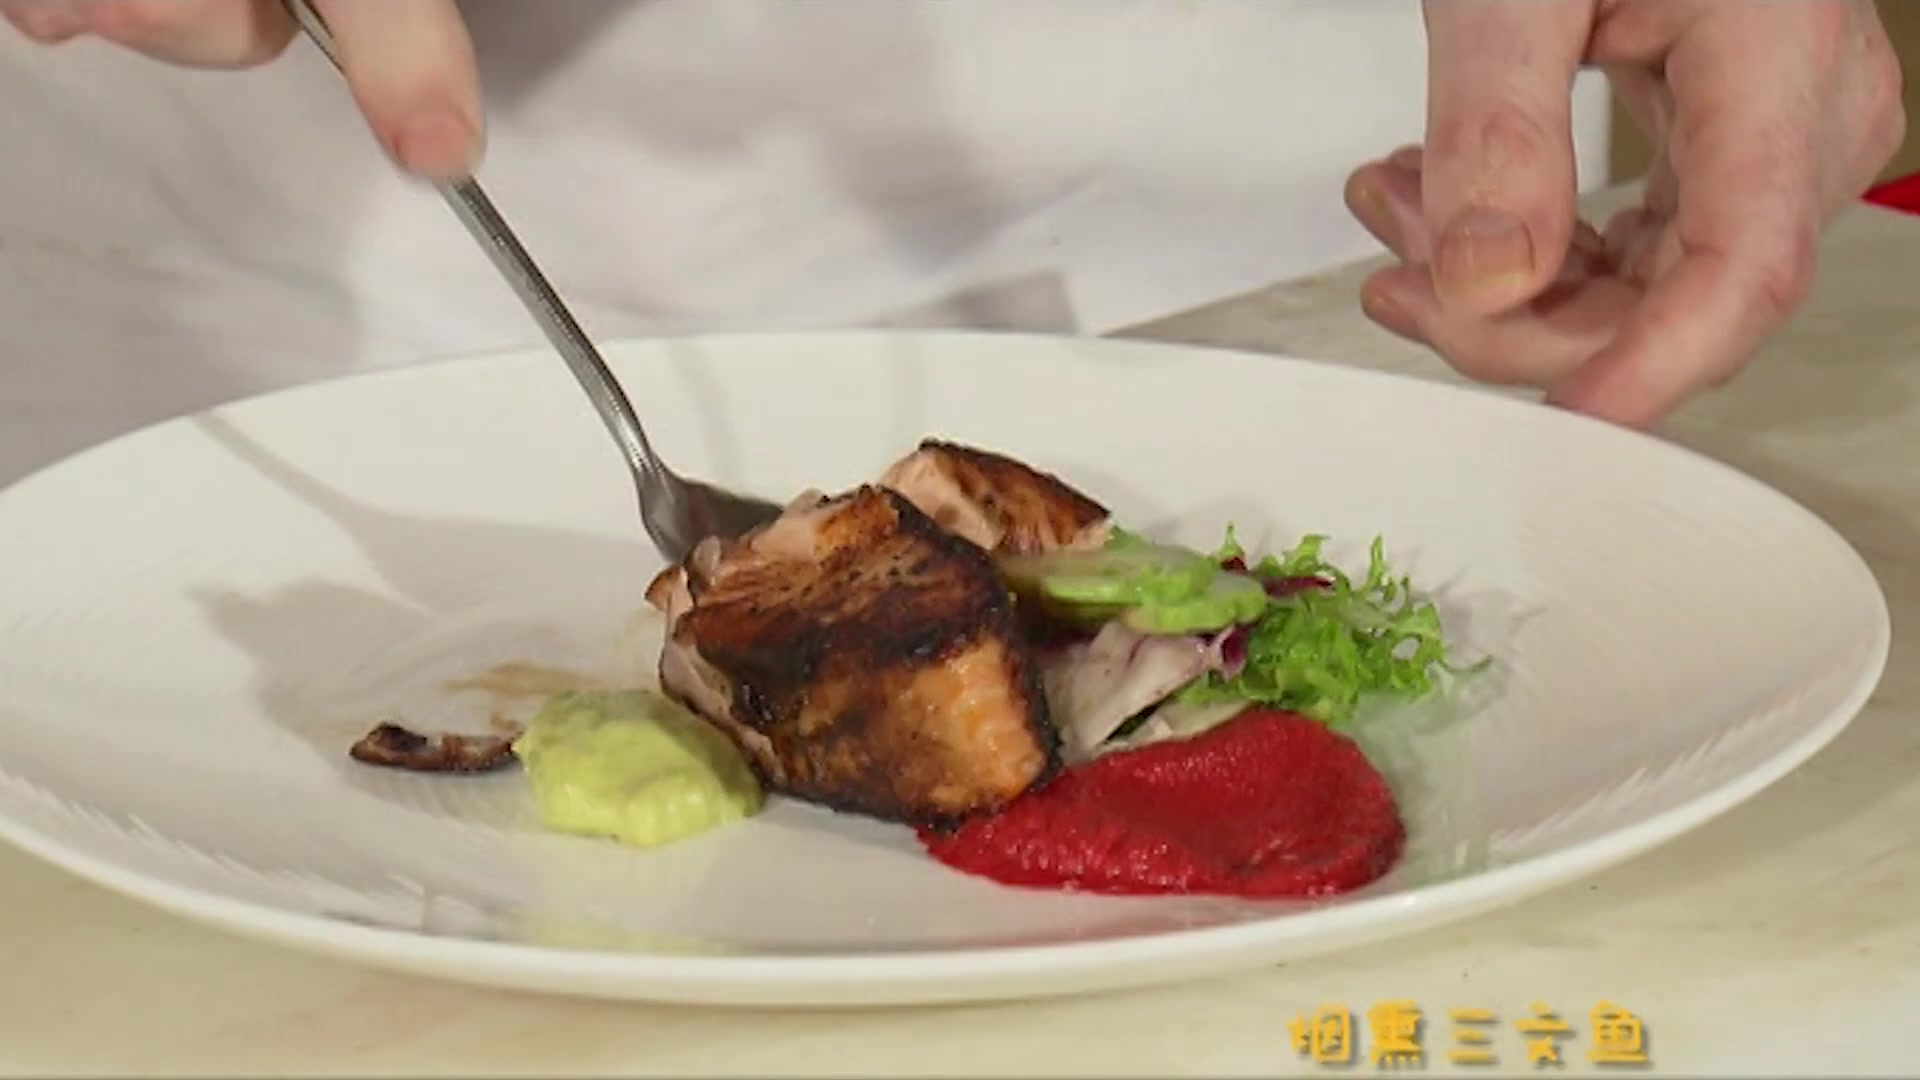 You Are the Chef Episode 6